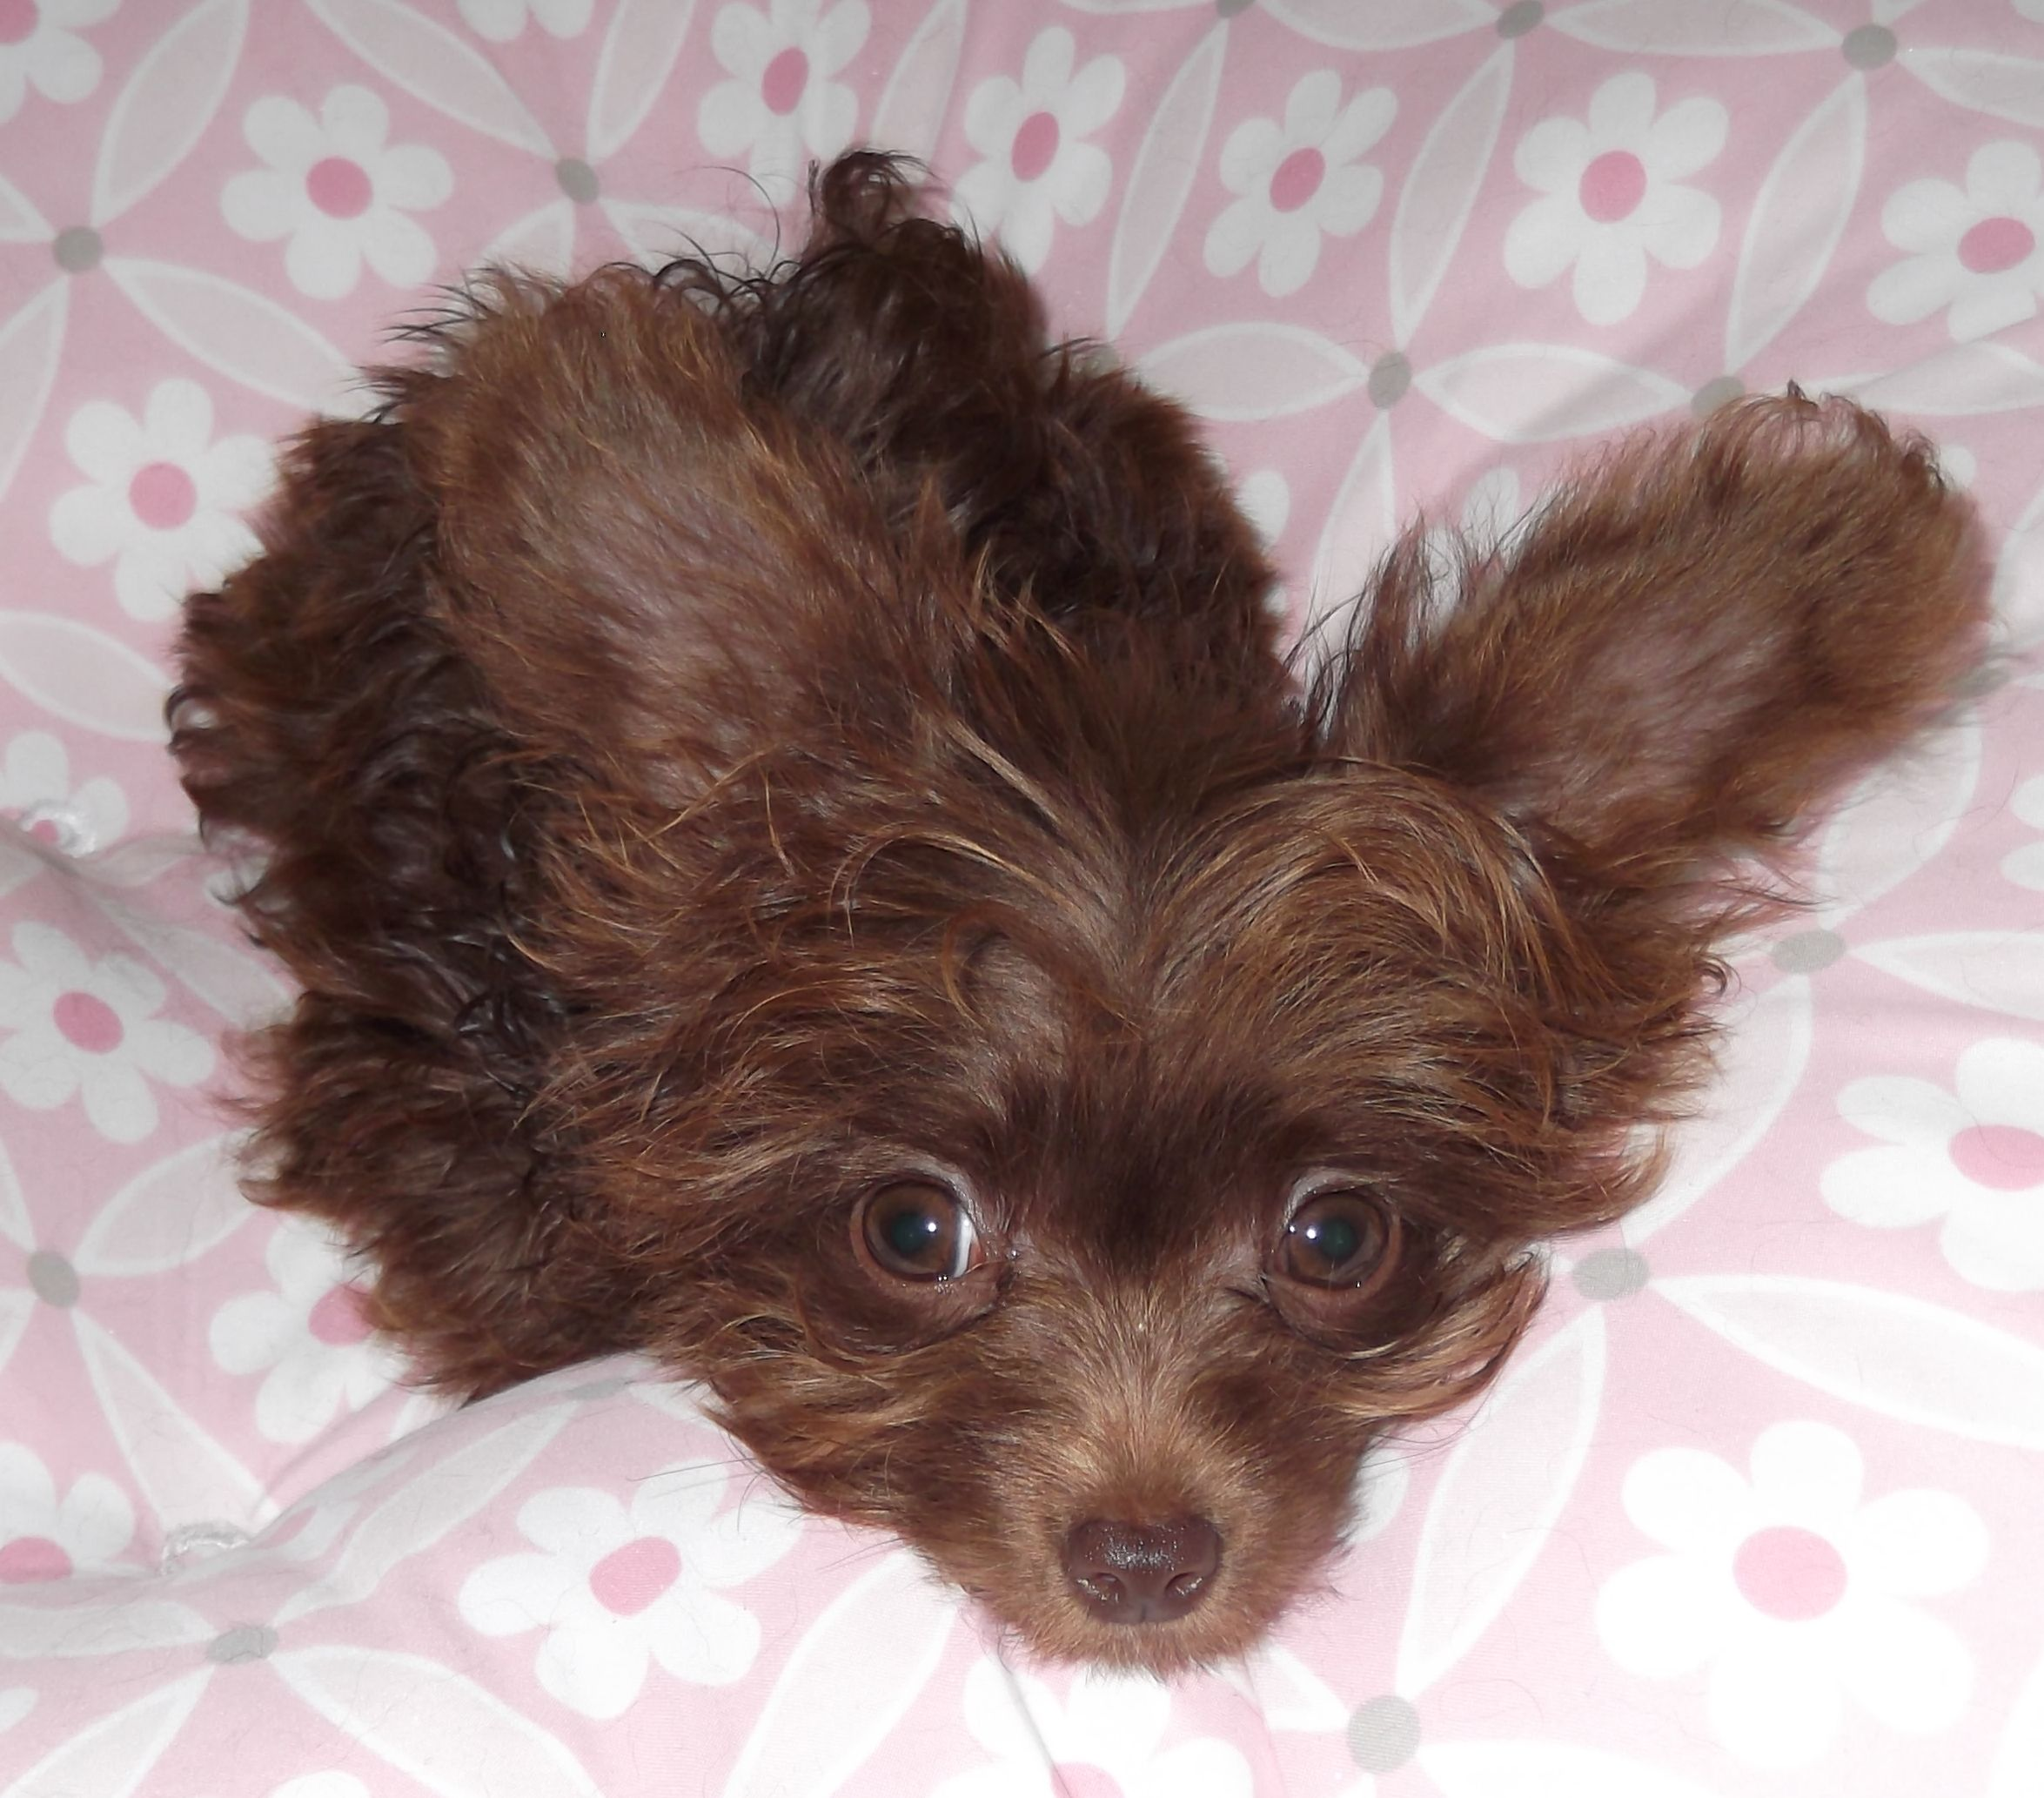 Malaysia My Baby Girl Chihuahua X Teacup Poodle Cute Puppies